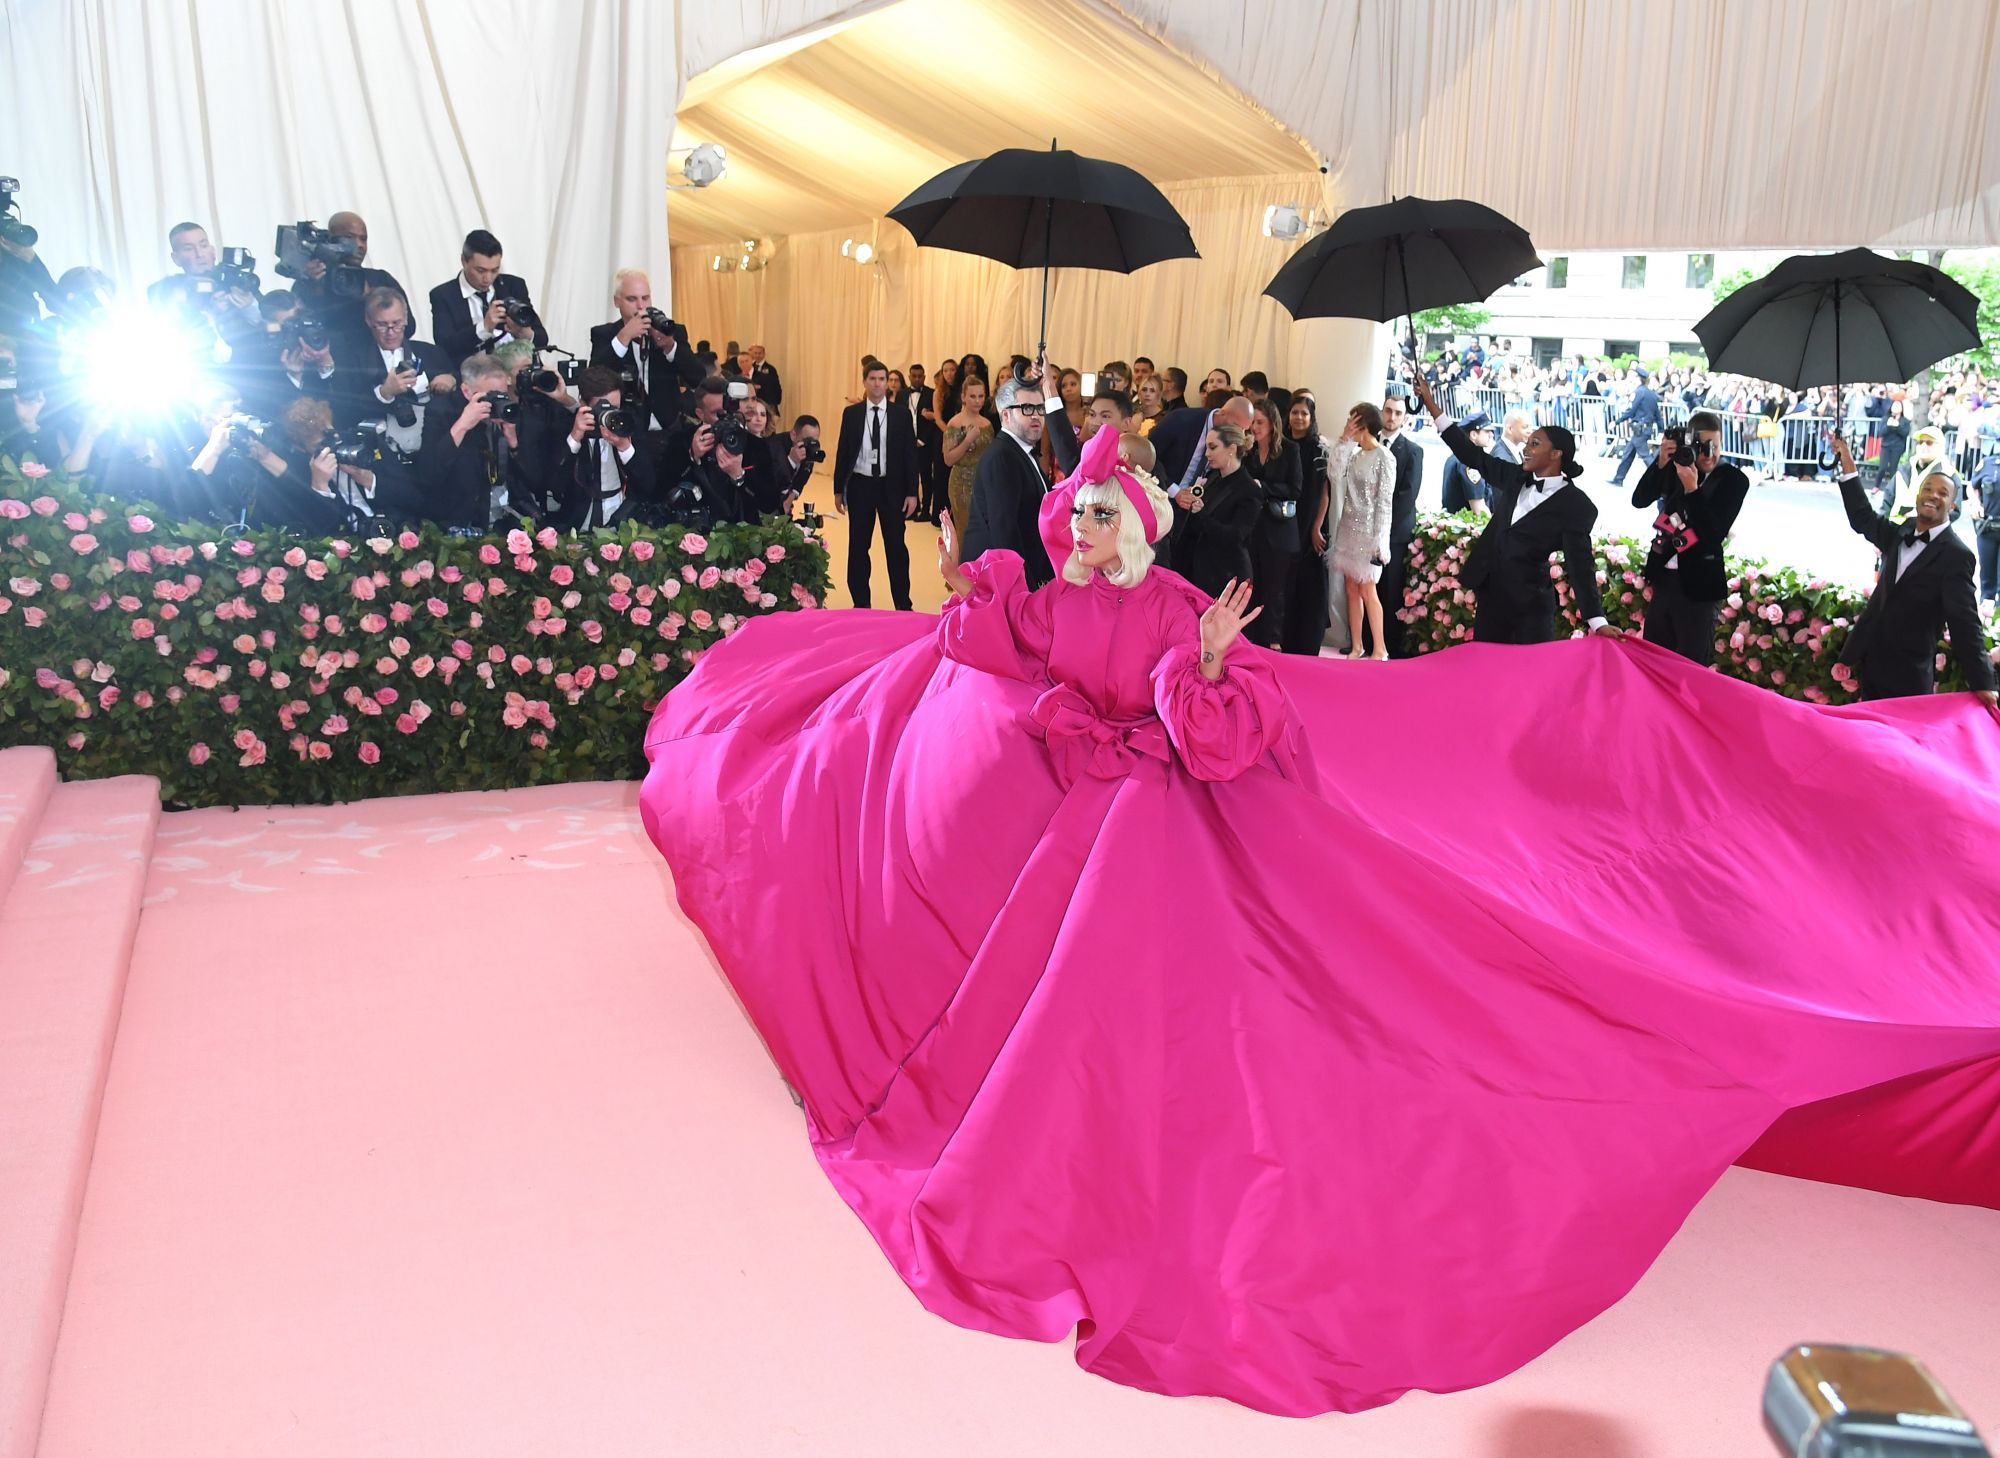 NEW YORK, NEW YORK - MAY 06: Lady Gaga arrives for the 2019 Met Gala celebrating Camp: Notes on Fashion at The Metropolitan Museum of Art on May 06, 2019 in New York City. (Photo by Karwai Tang/Getty Images)